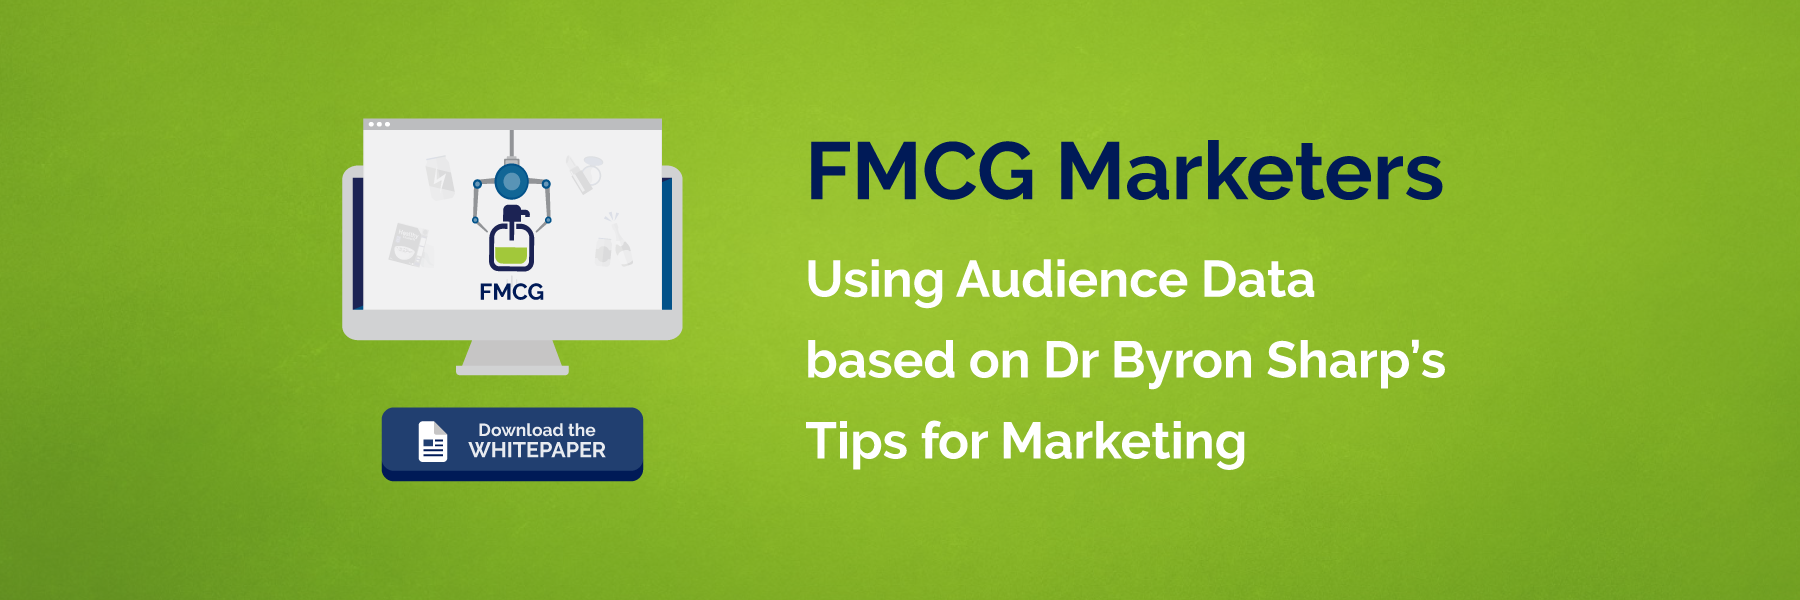 FMCG White Paper | FMCG Online campaign.png